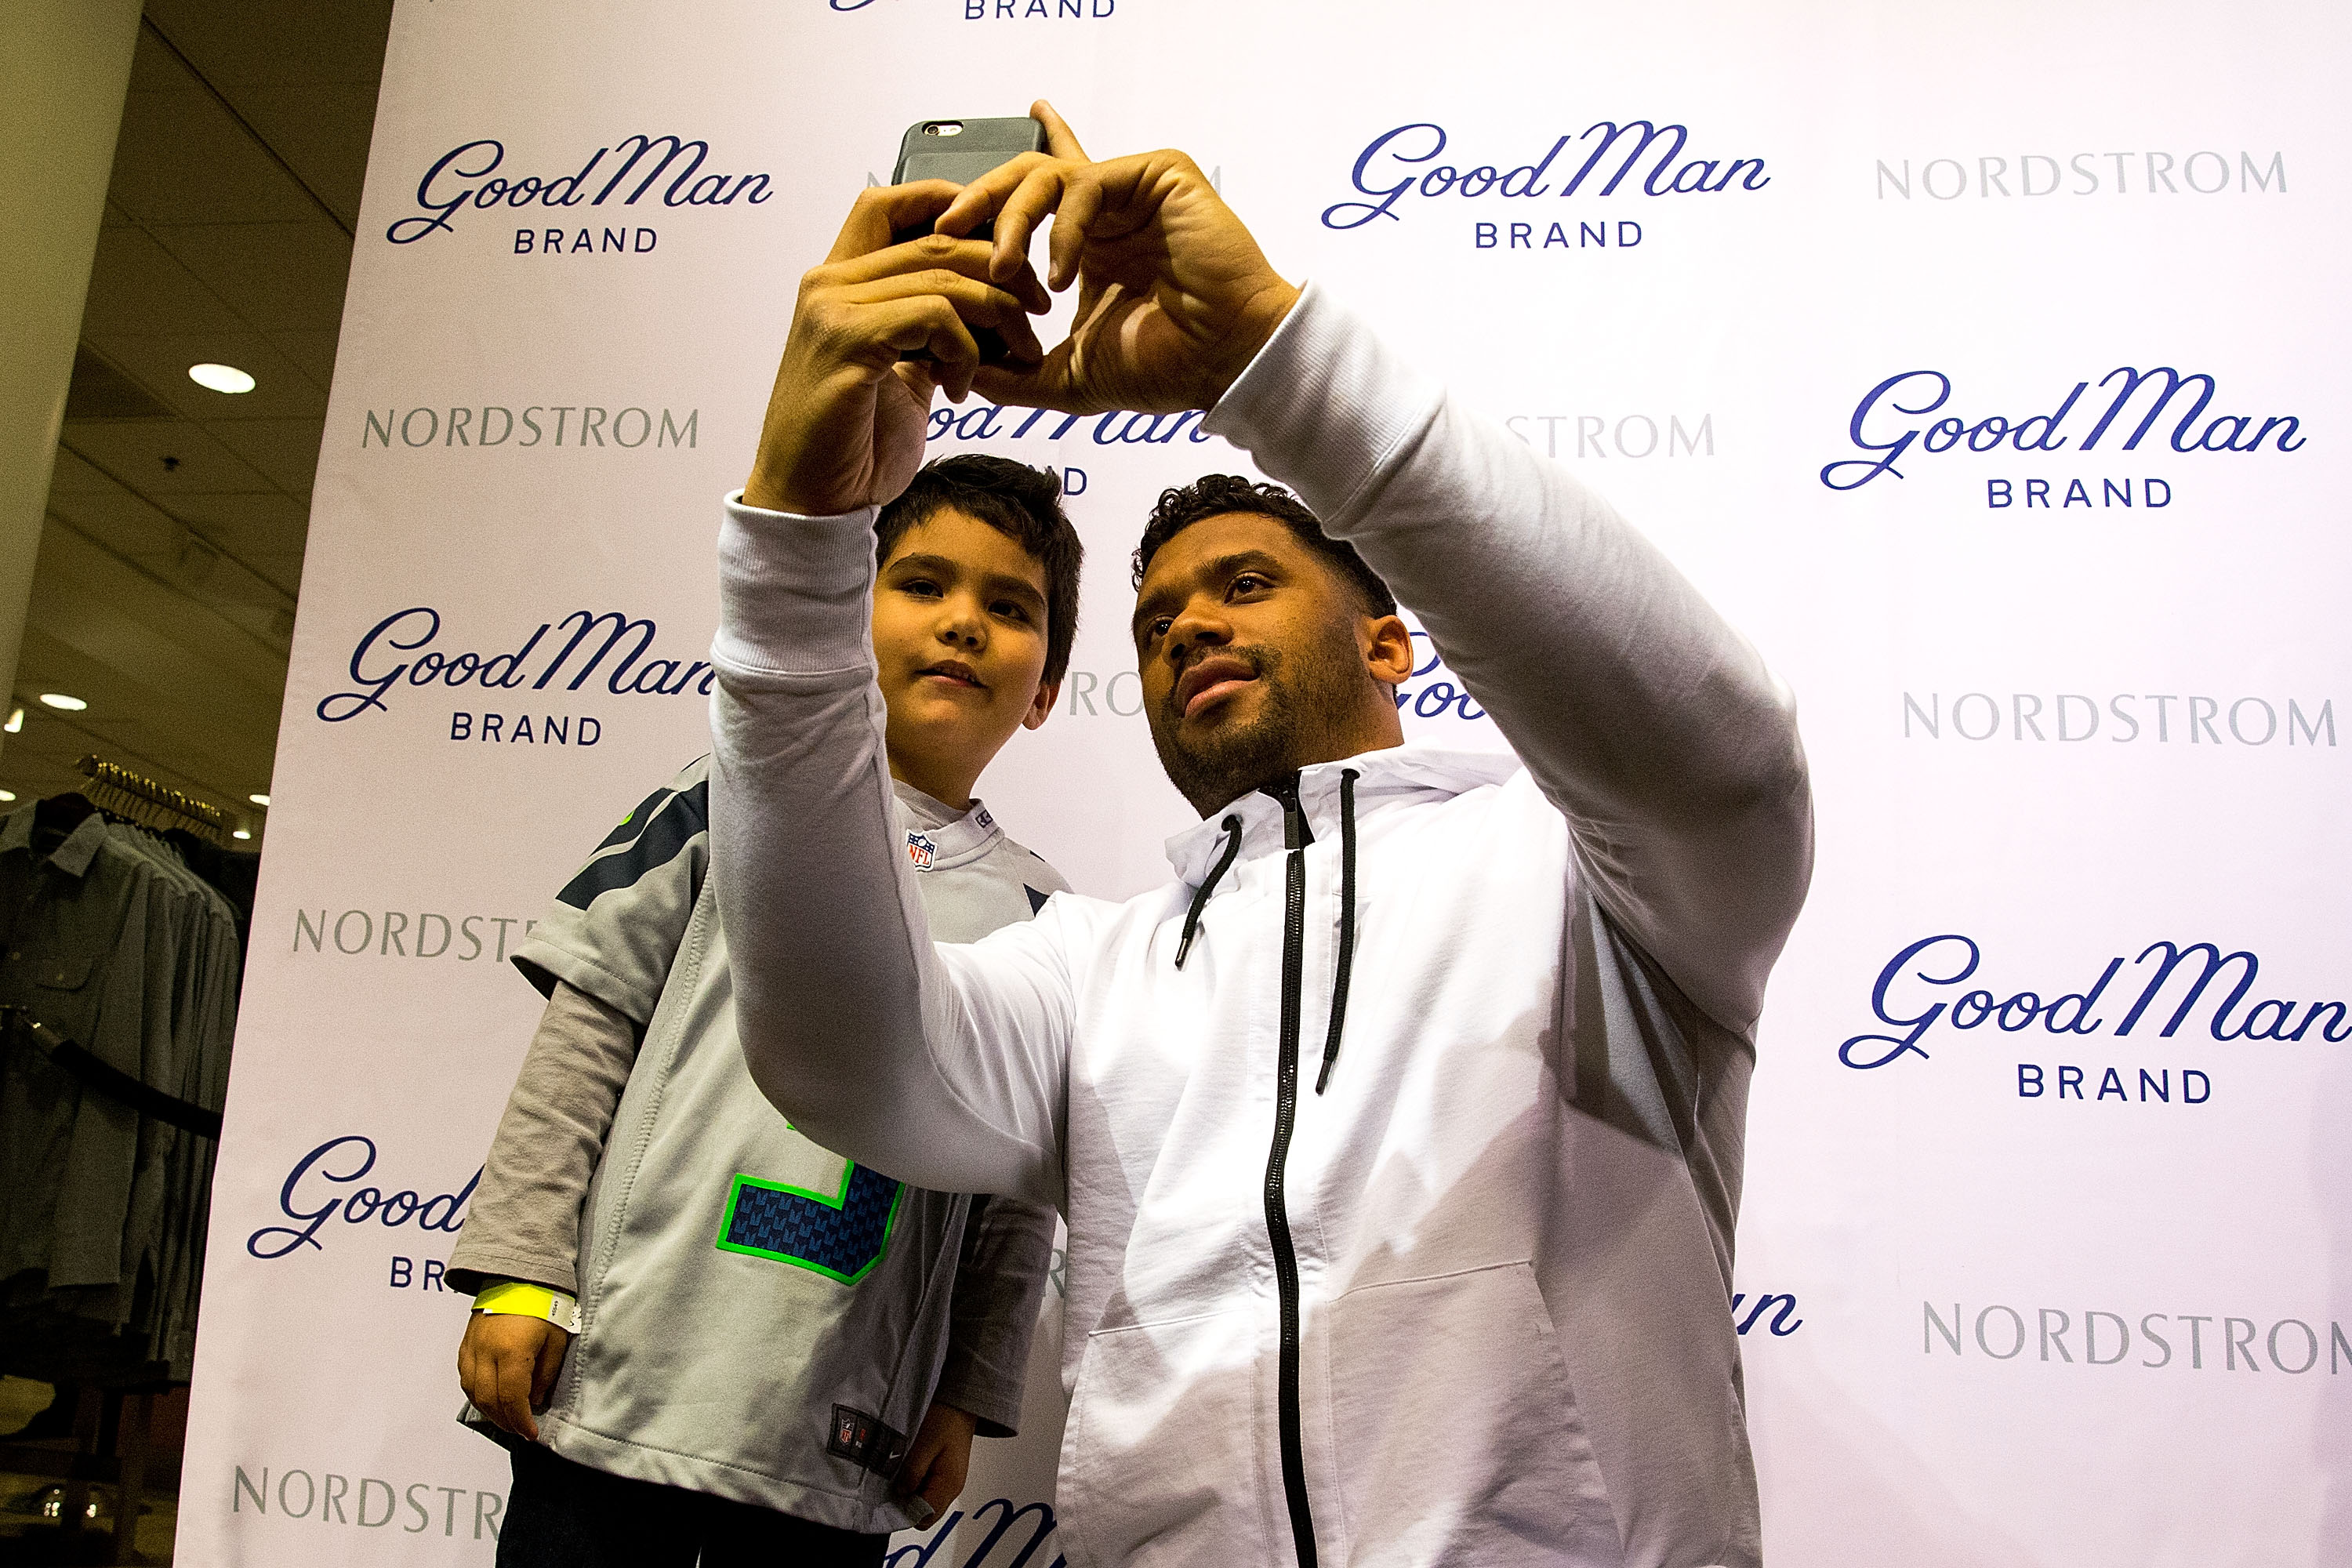 Seattle Seahawks quarterback Russell Wilson poses for a selfie with a fan at Nordstrom during his Good Man Brand clothing line launch